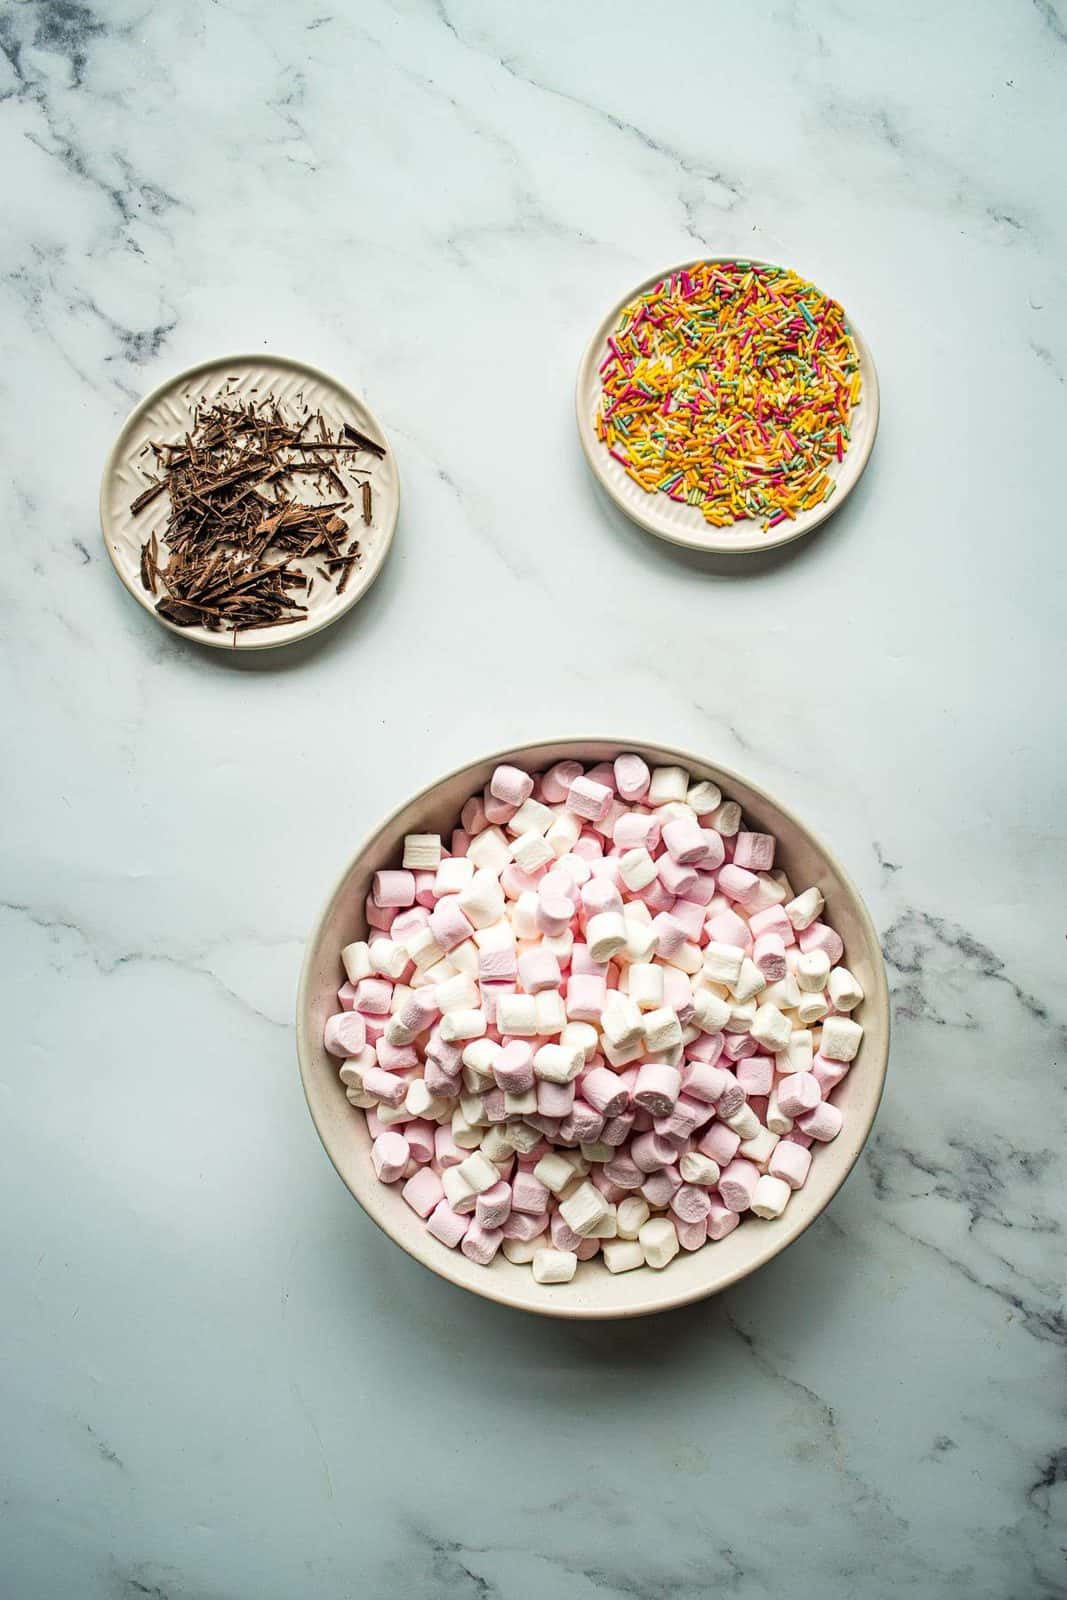 Bowls of marshmallows, sprinkles and chocolate shavings.